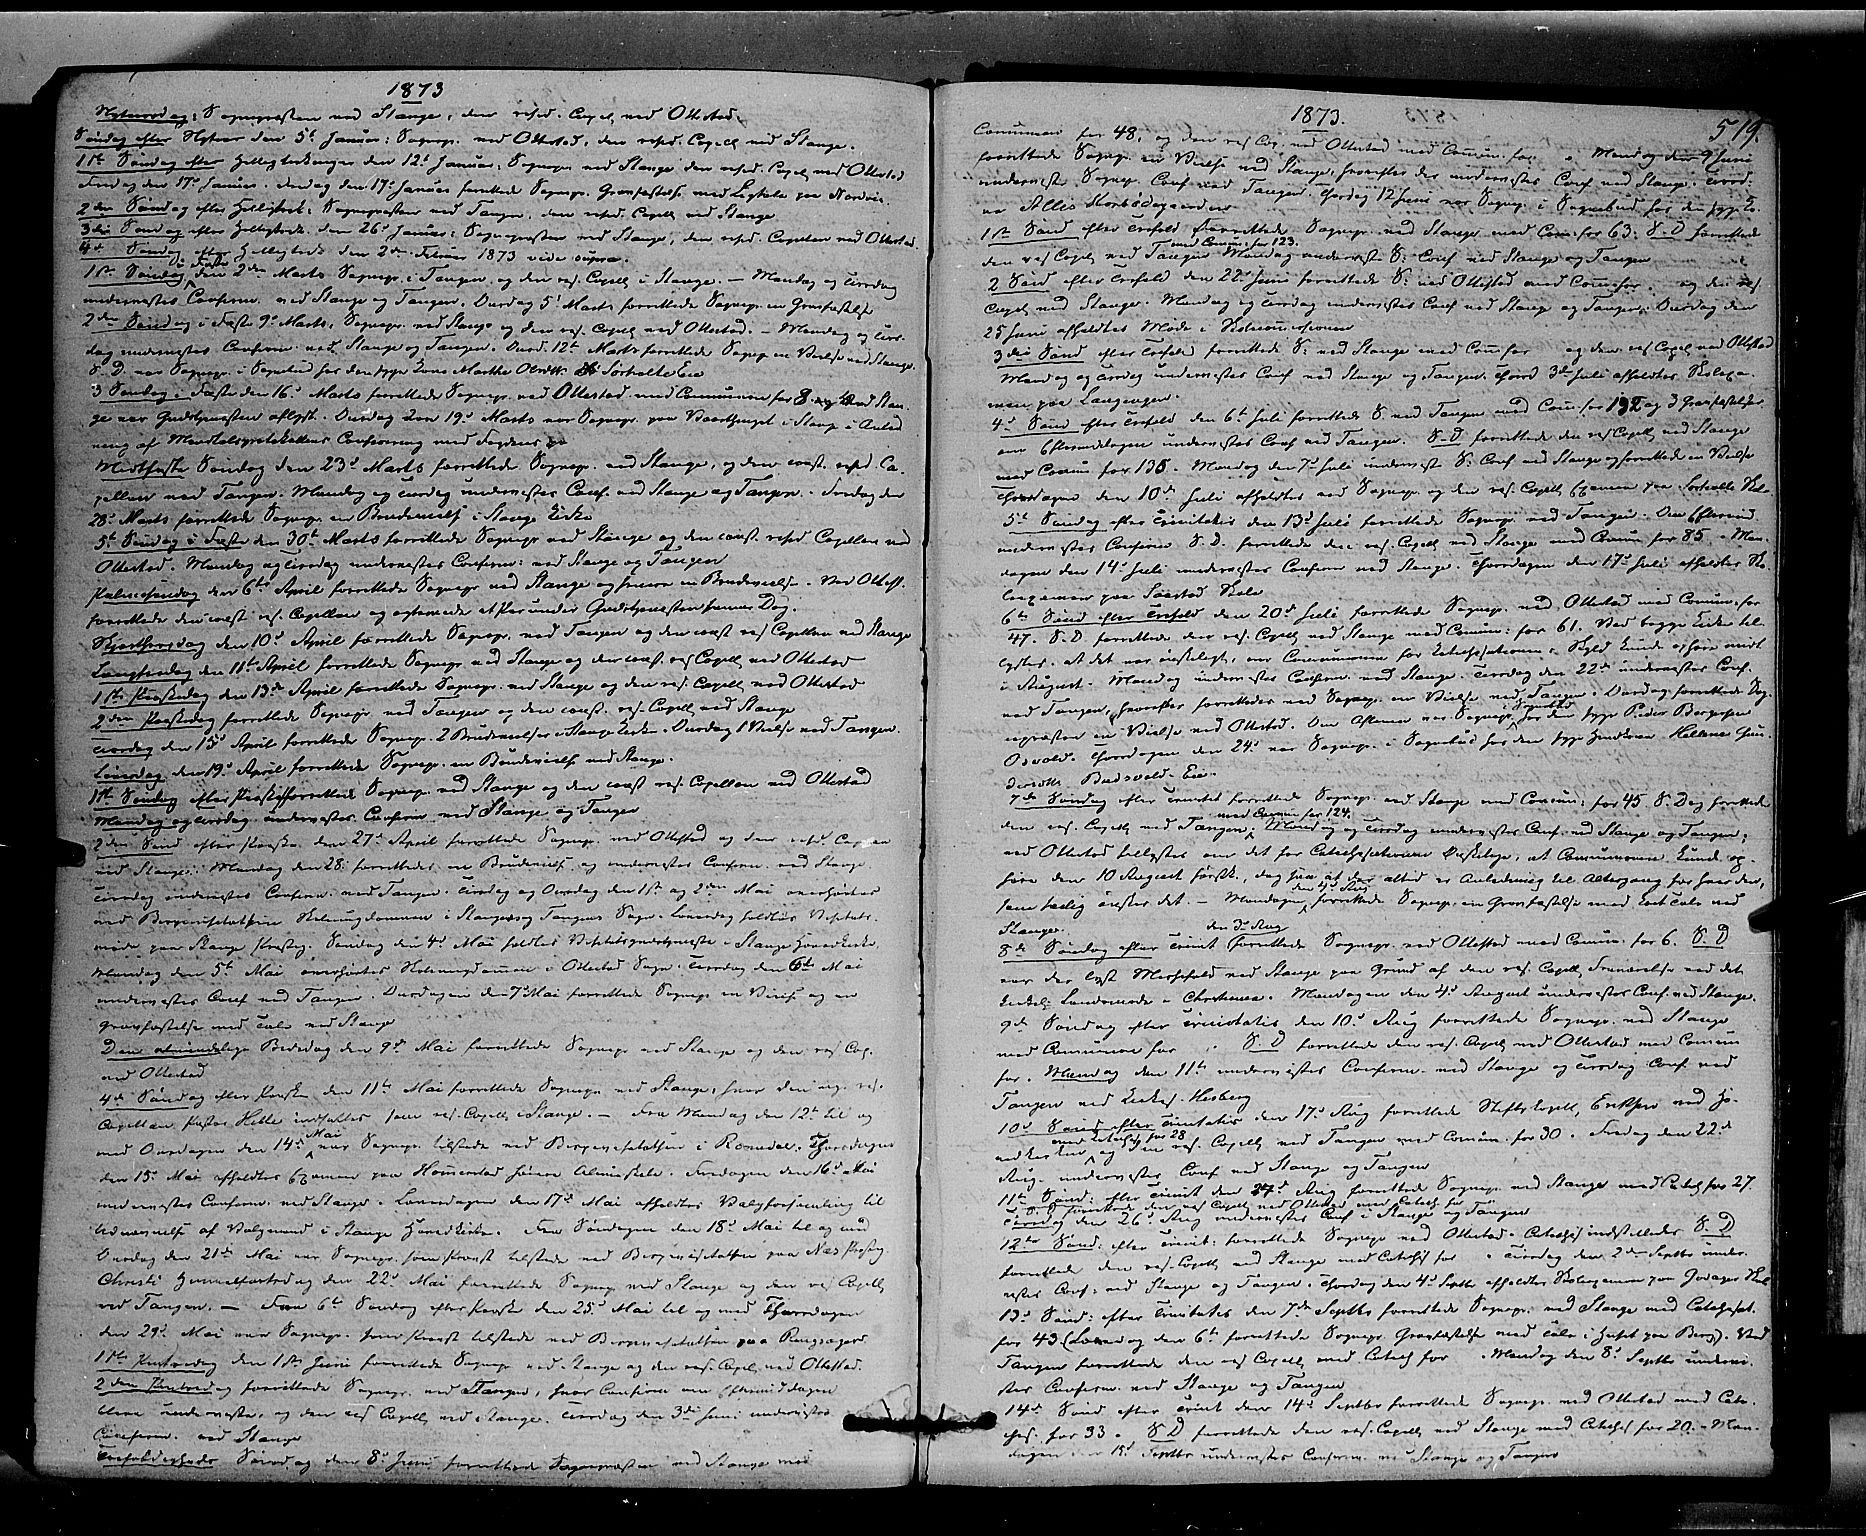 SAH, Stange prestekontor, K/L0013: Parish register (official) no. 13, 1862-1879, p. 519